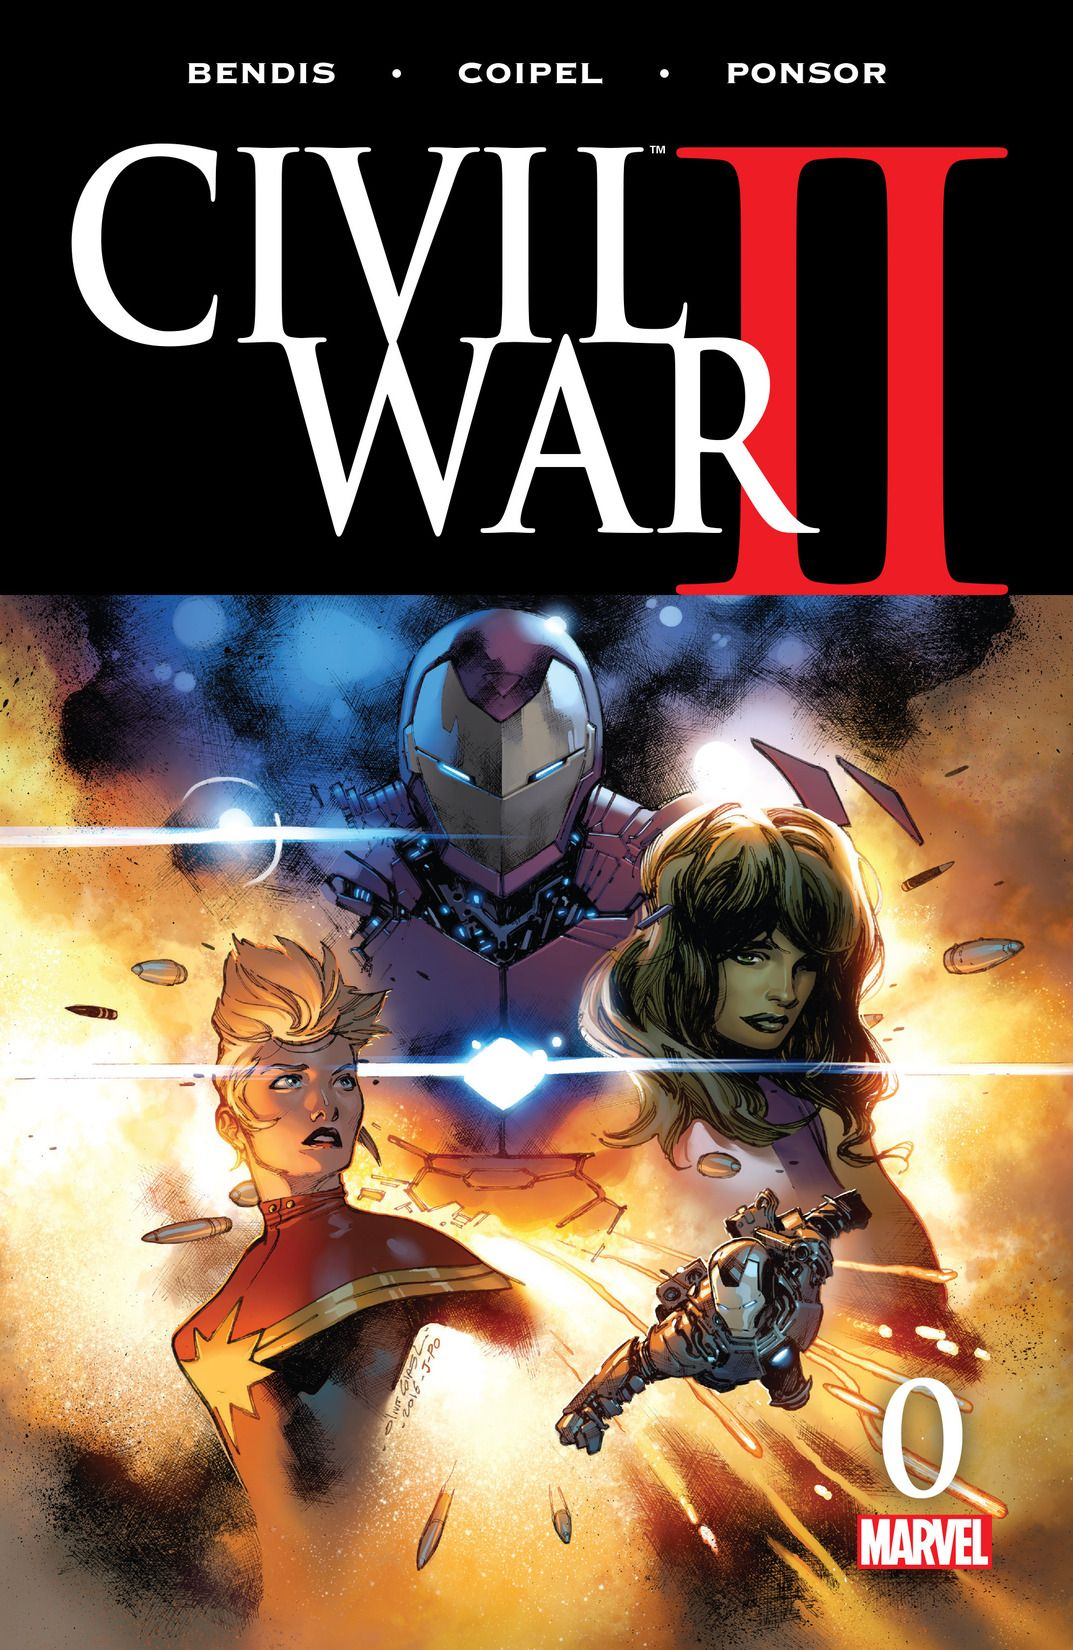 civil war II issue 0 by marvel entertainment